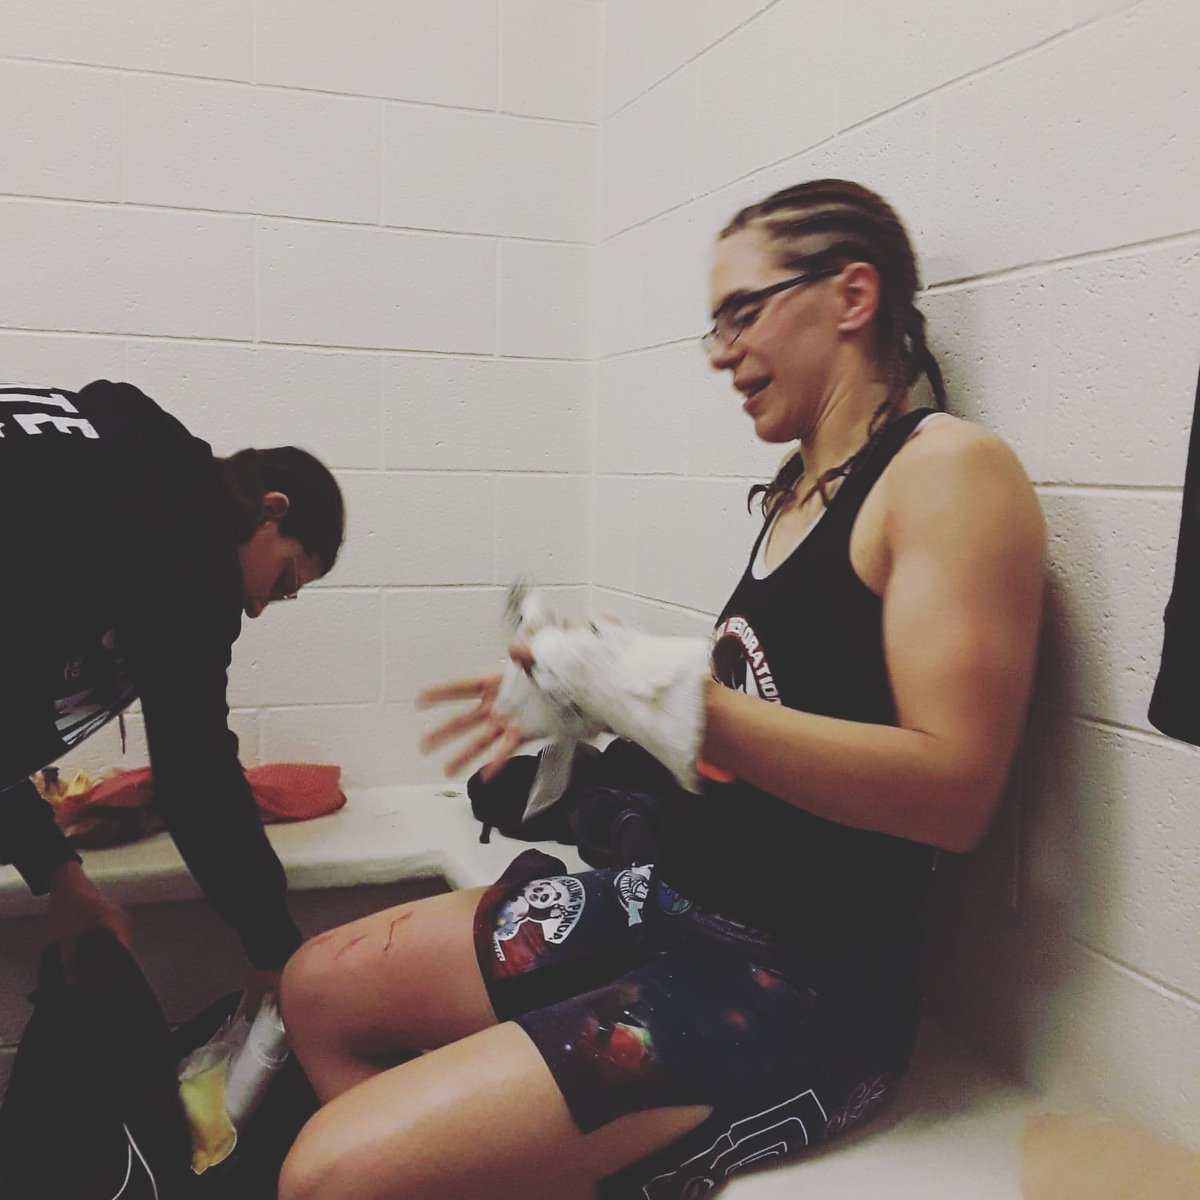 #ThrowbackThursday to a bloody job well done with my people having my back. I can't wait for what comes next   #mma #TheReenAndTheRox #BigReenEnergy #SouthpawOutlaw #invictafc https://t.co/rZDqa0nu9f